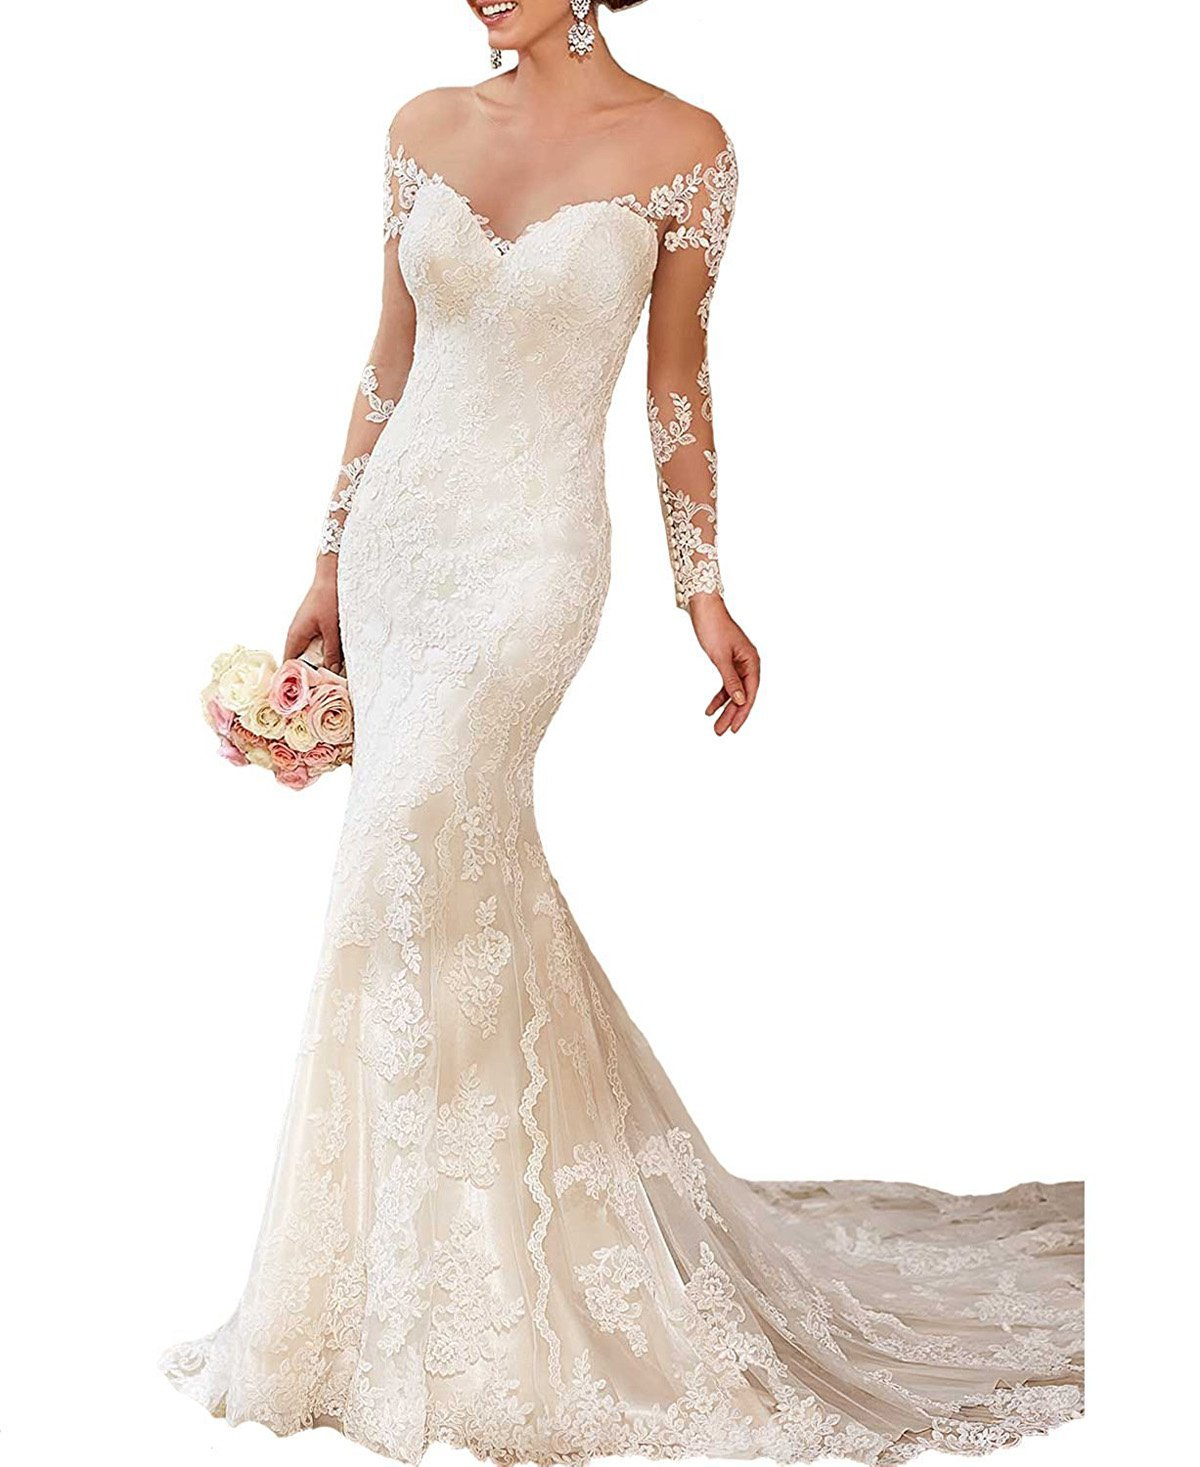 RightBride Women's White Vintage 2017 Long Sleeves Mermaid Wedding Dresses for Bride Lace Gowns Size 4